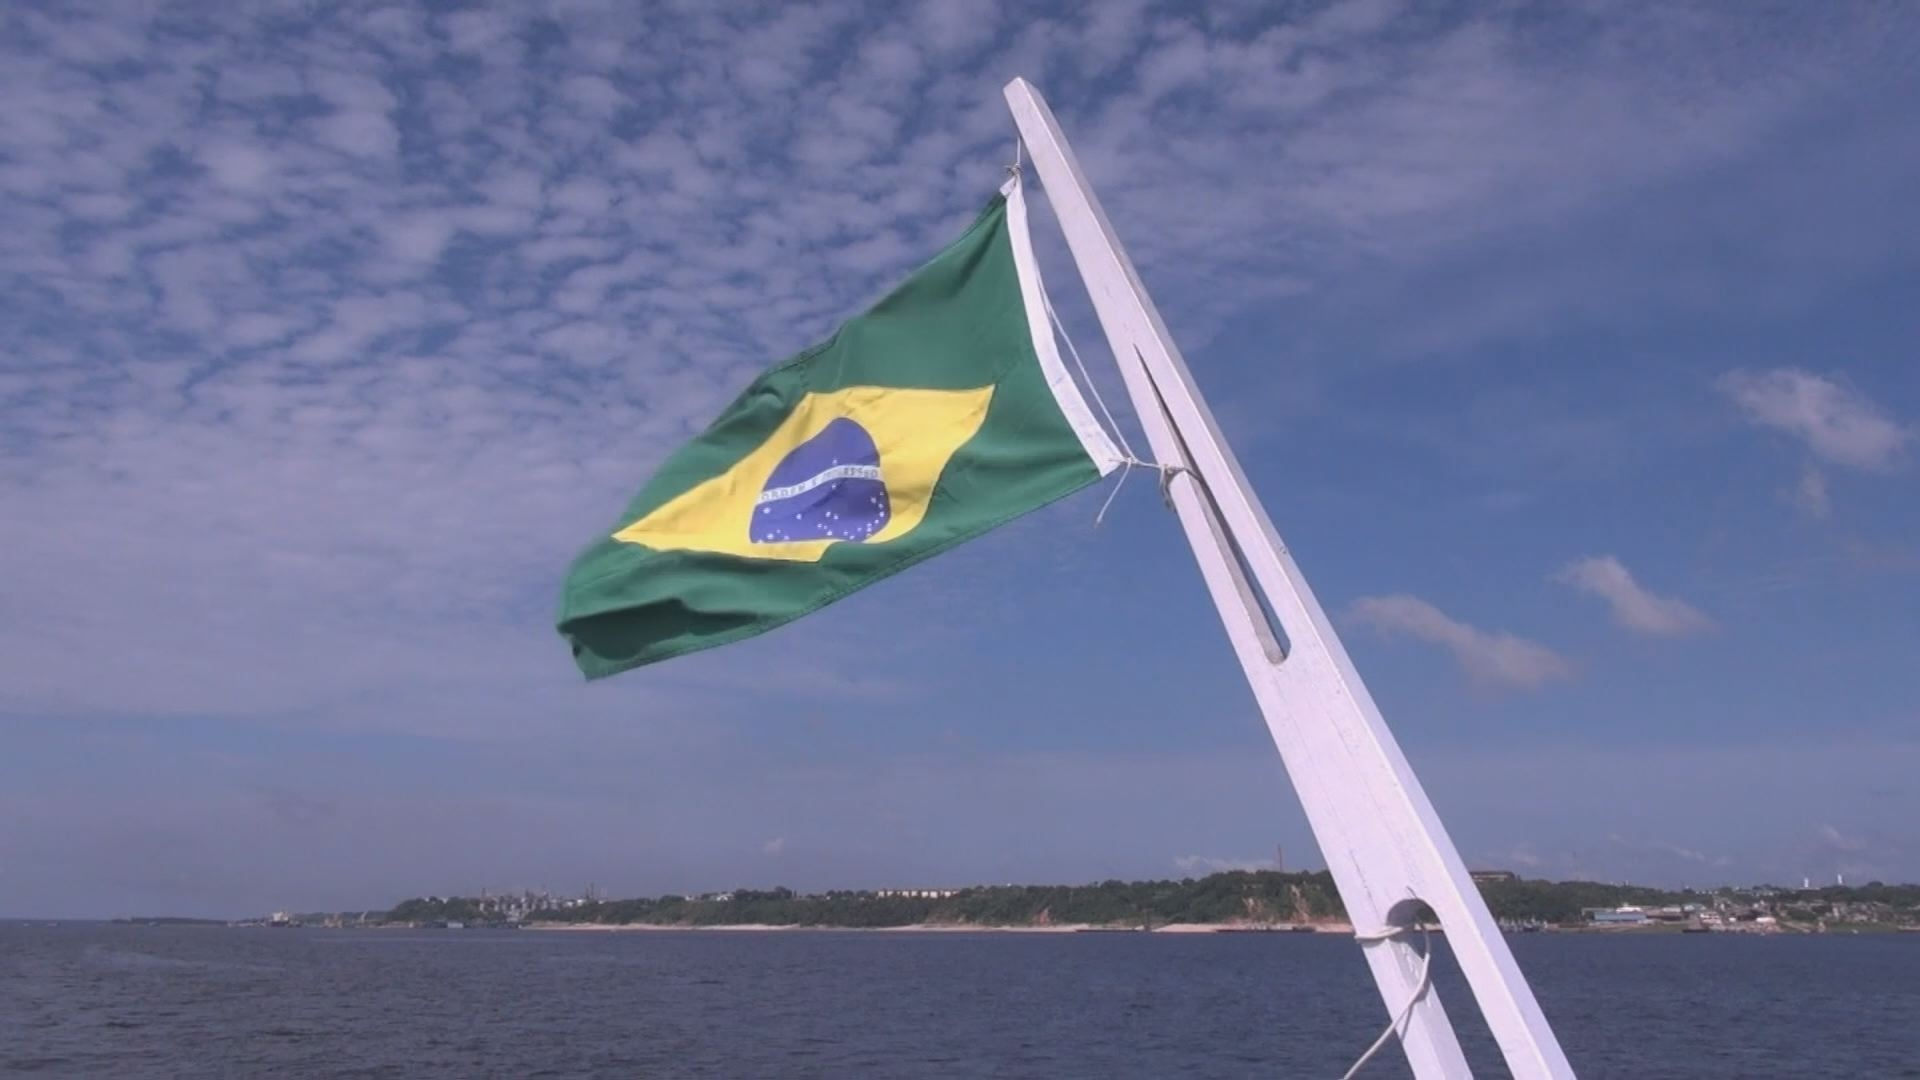 Brazil's economic free fall could bring wider fallout